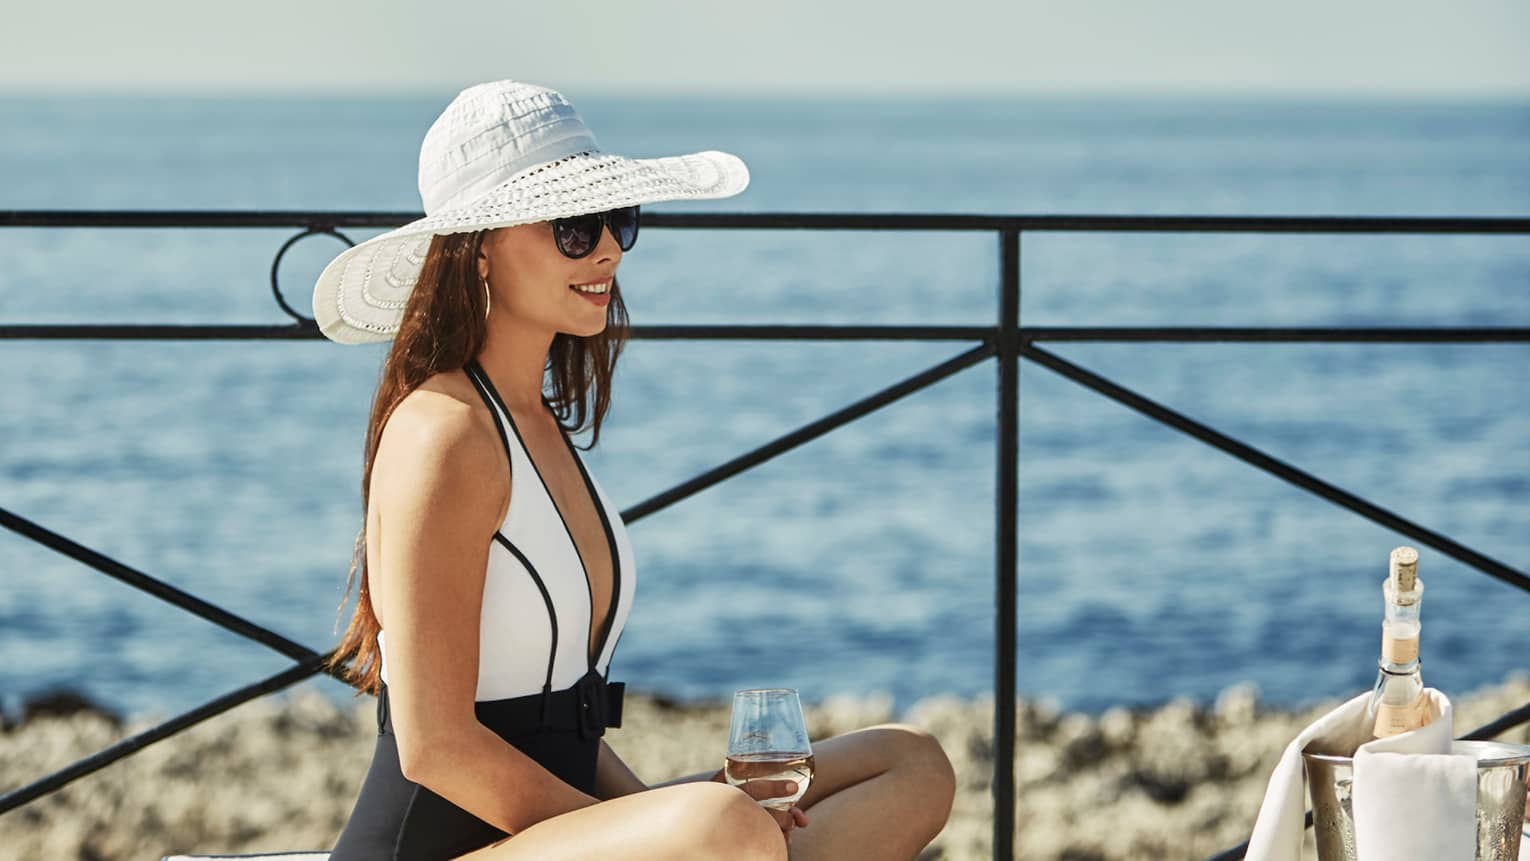 Woman wearing swimsuit, white sun hat, sunglasses sits cross-legged with wine